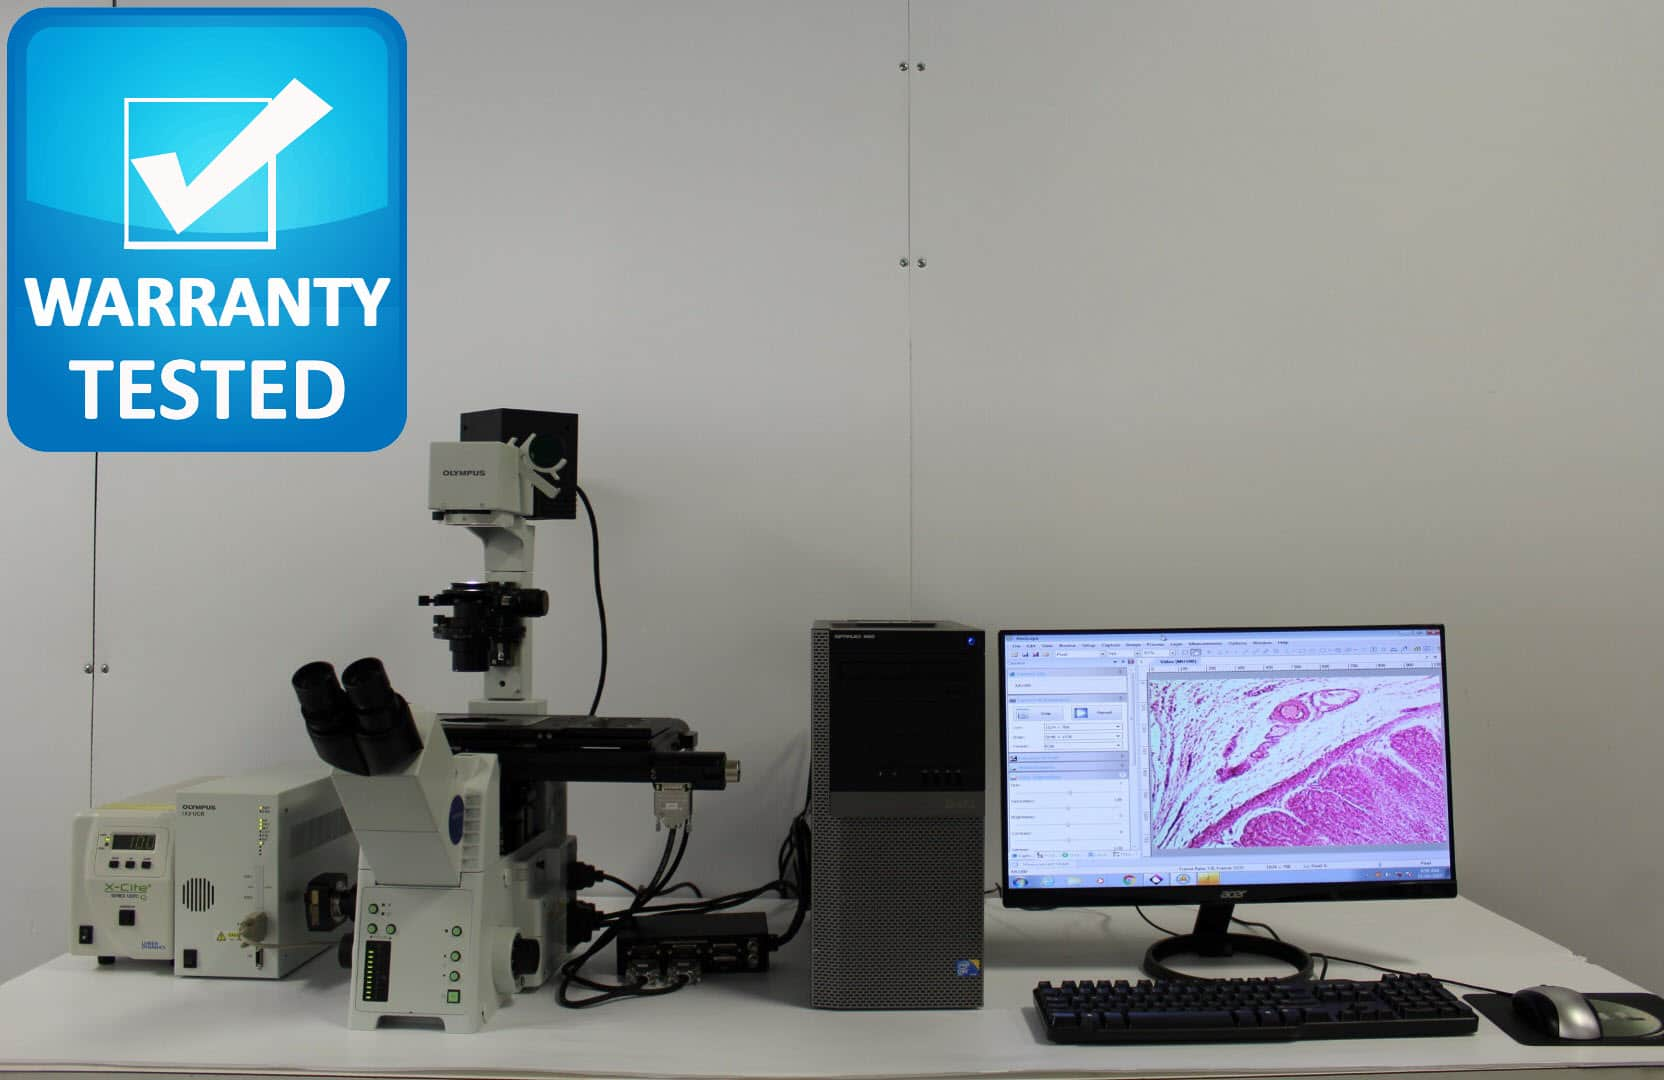 Olympus IX81 Inverted Motorized Fluorescence Motorized Microscope